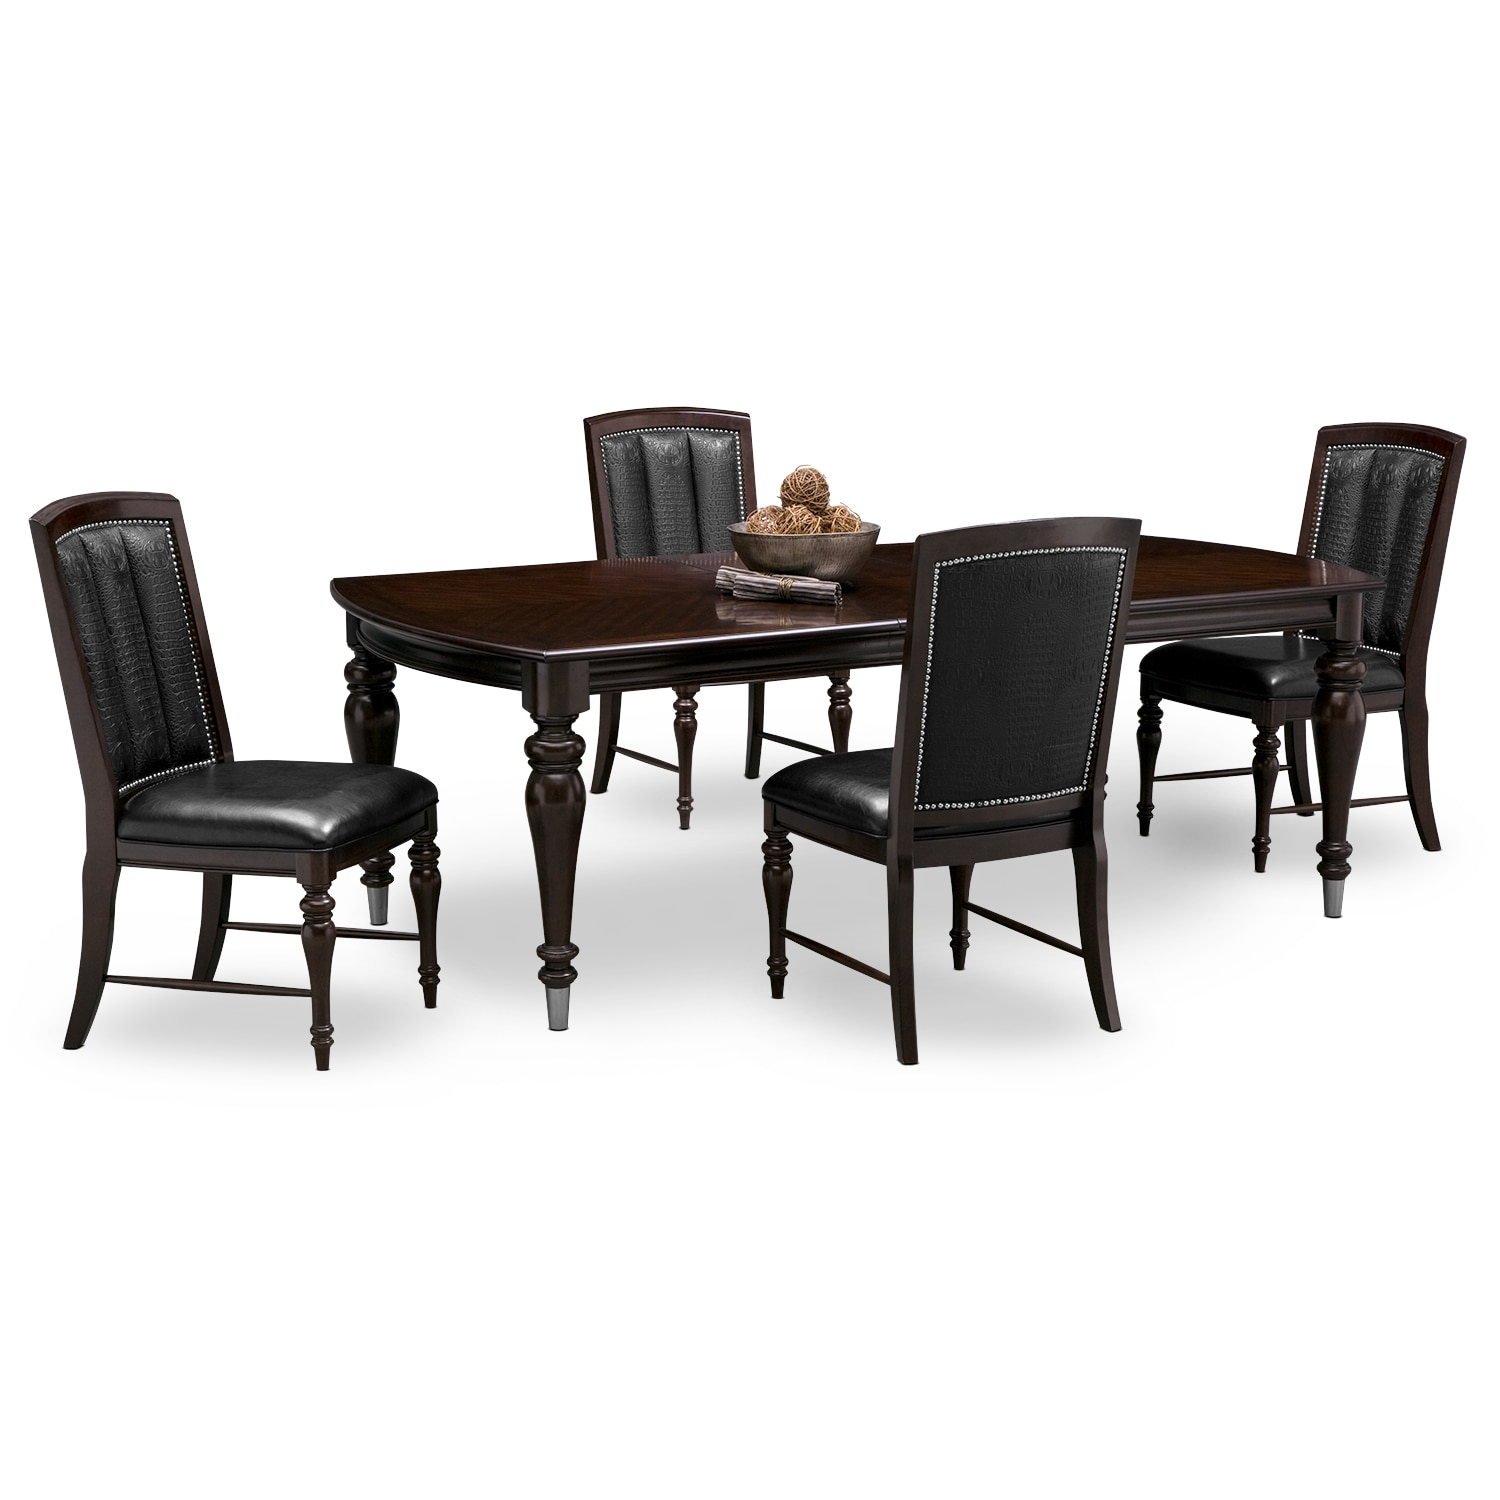 Esquire table and 4 chairs cherry american signature for Cherry dining room chairs